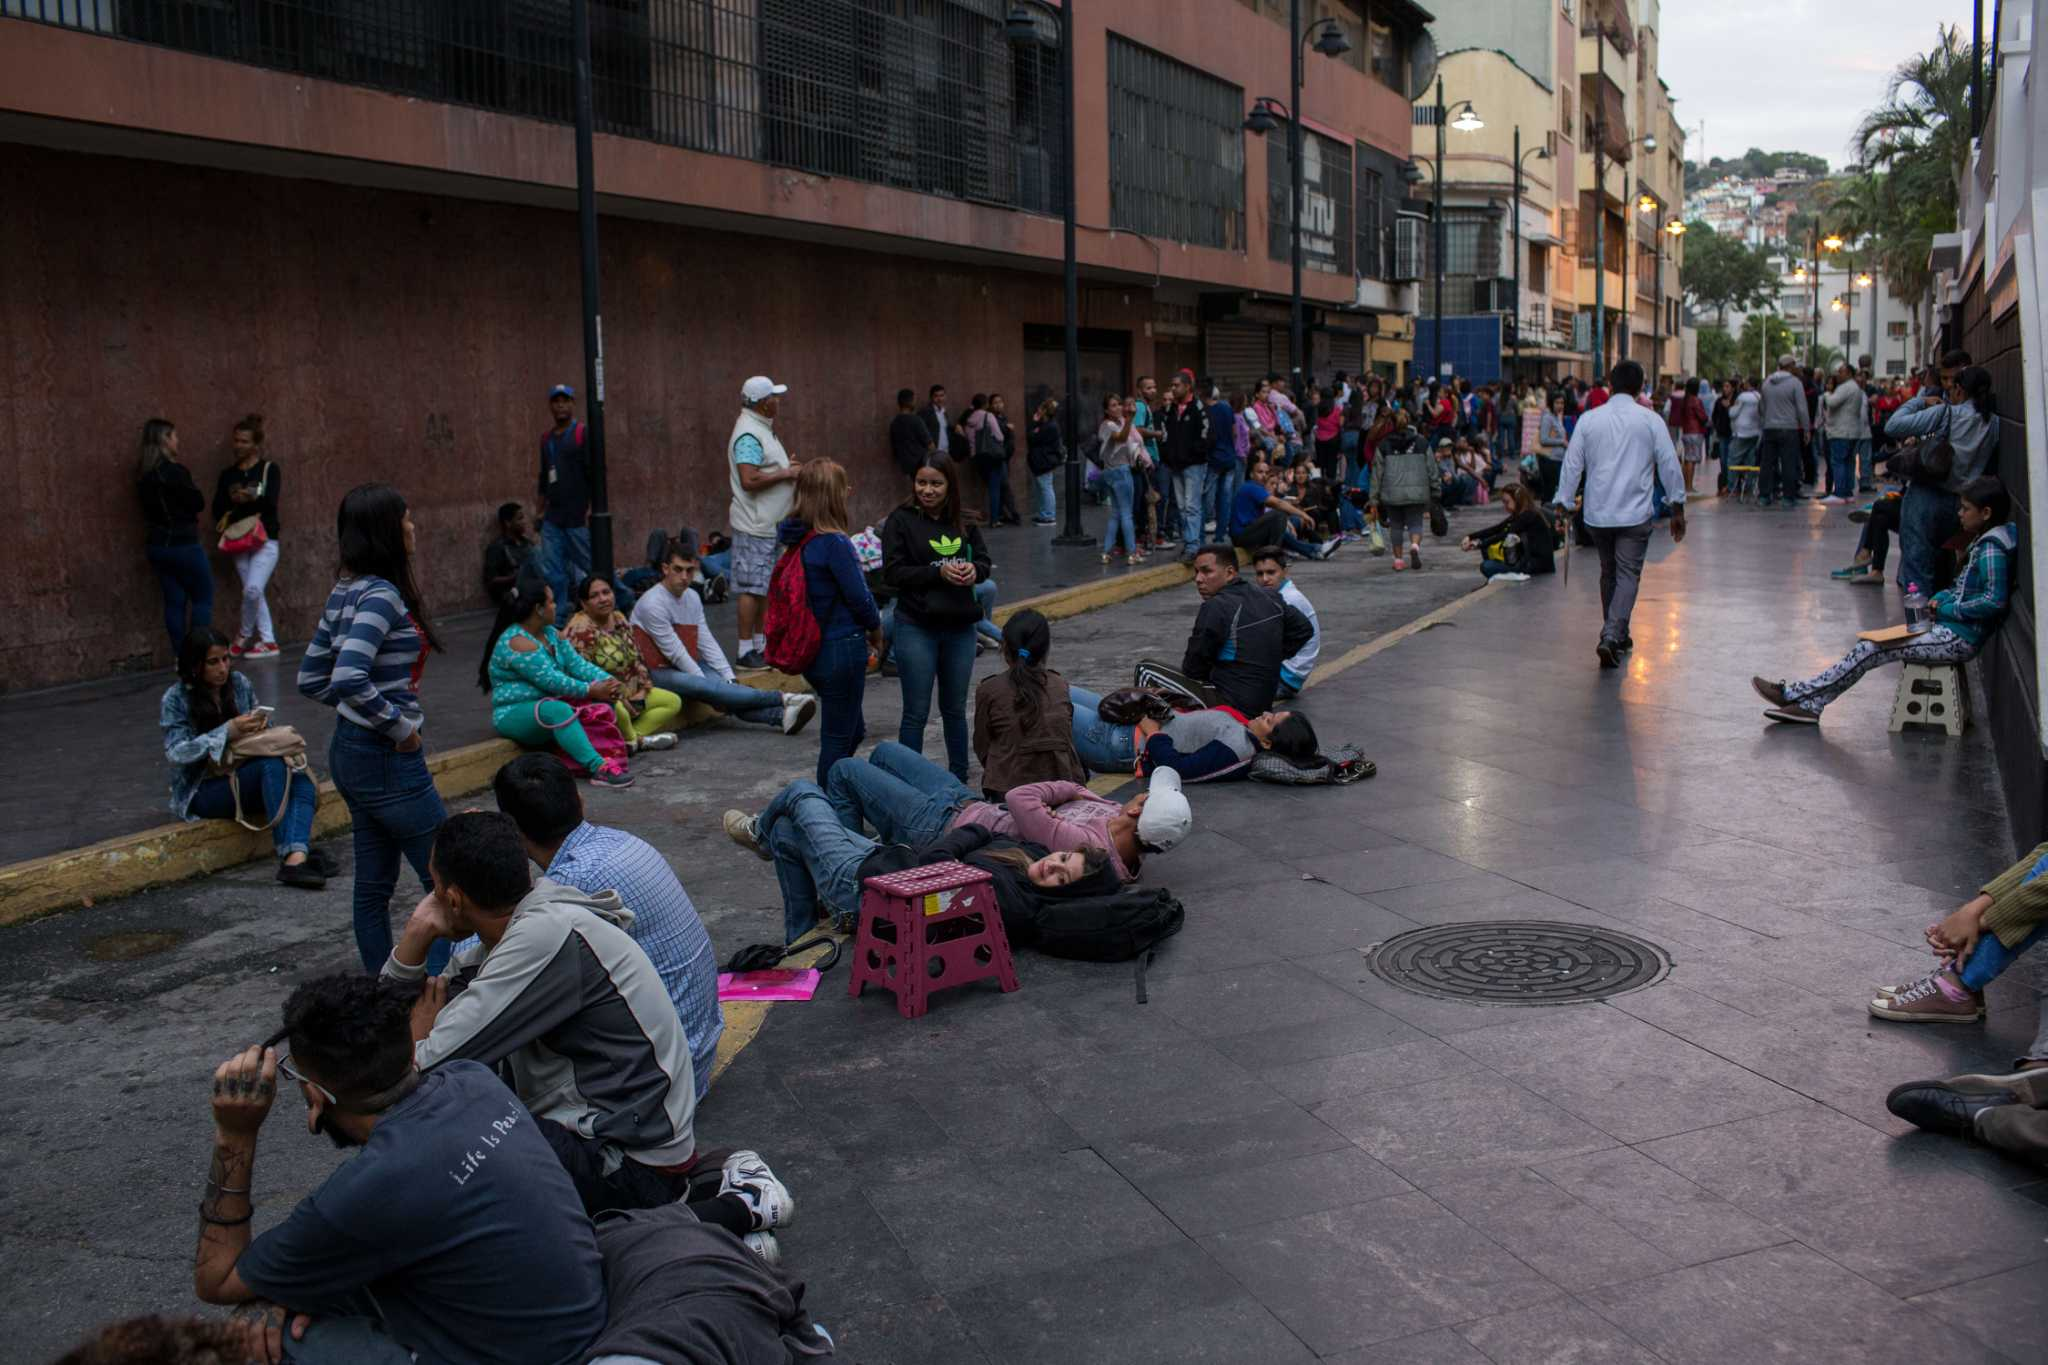 A humanitarian crisis in Venezuela? Nothing to see here, government says.